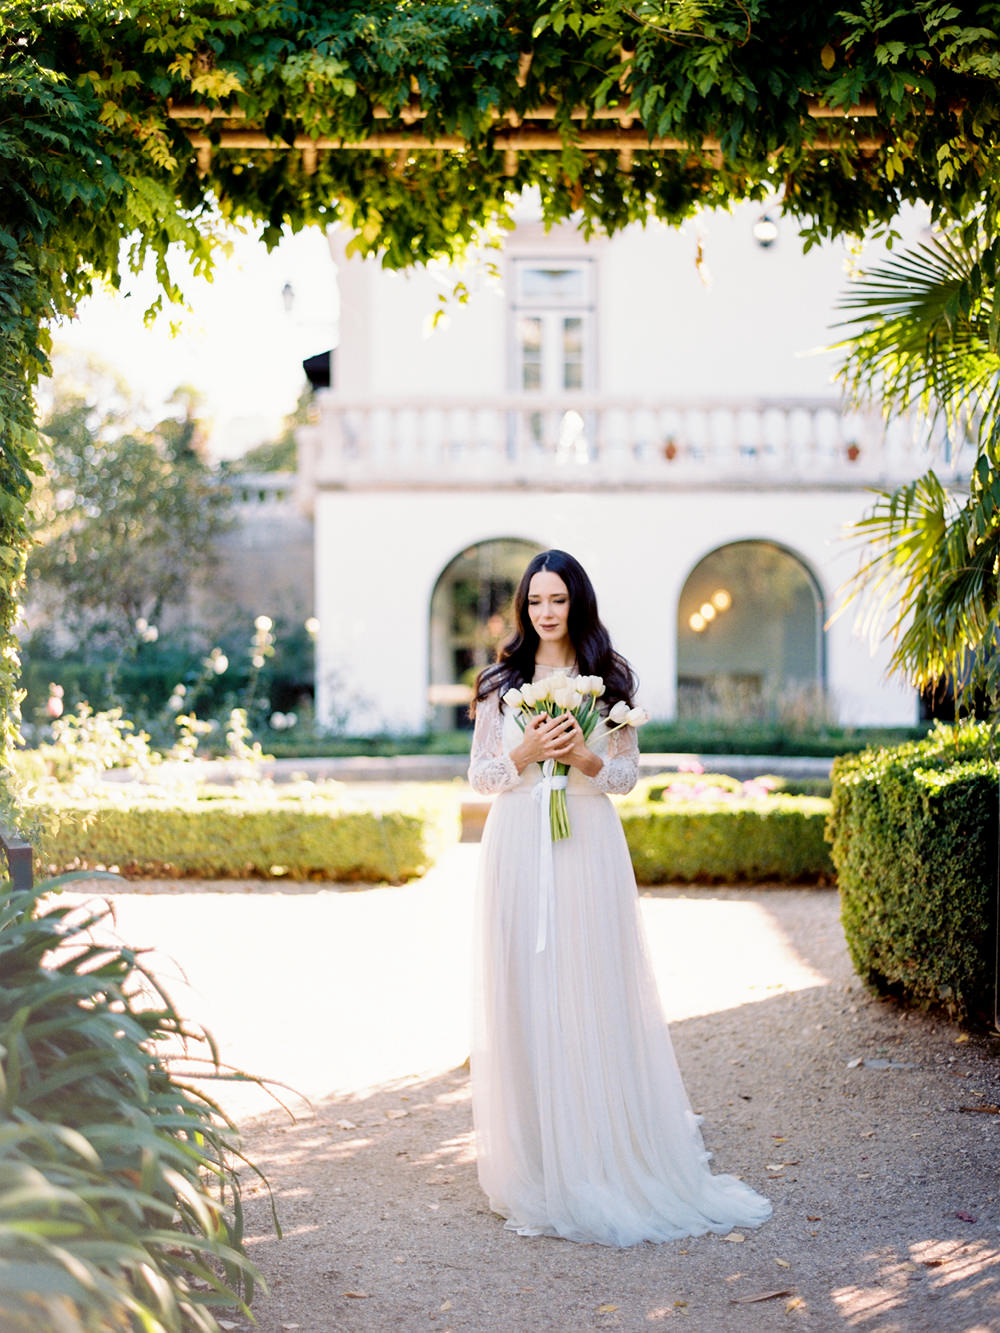 film fineart wedding photography bride dress